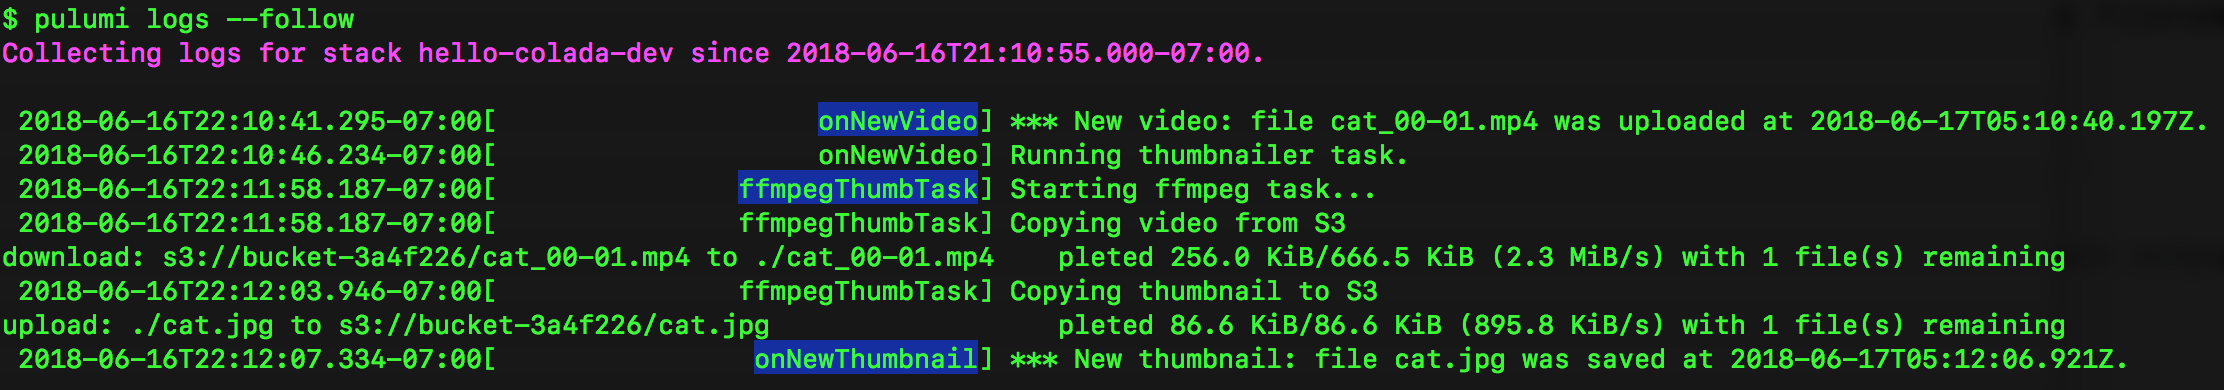 Build a Video Thumbnailer with Pulumi using Lambdas